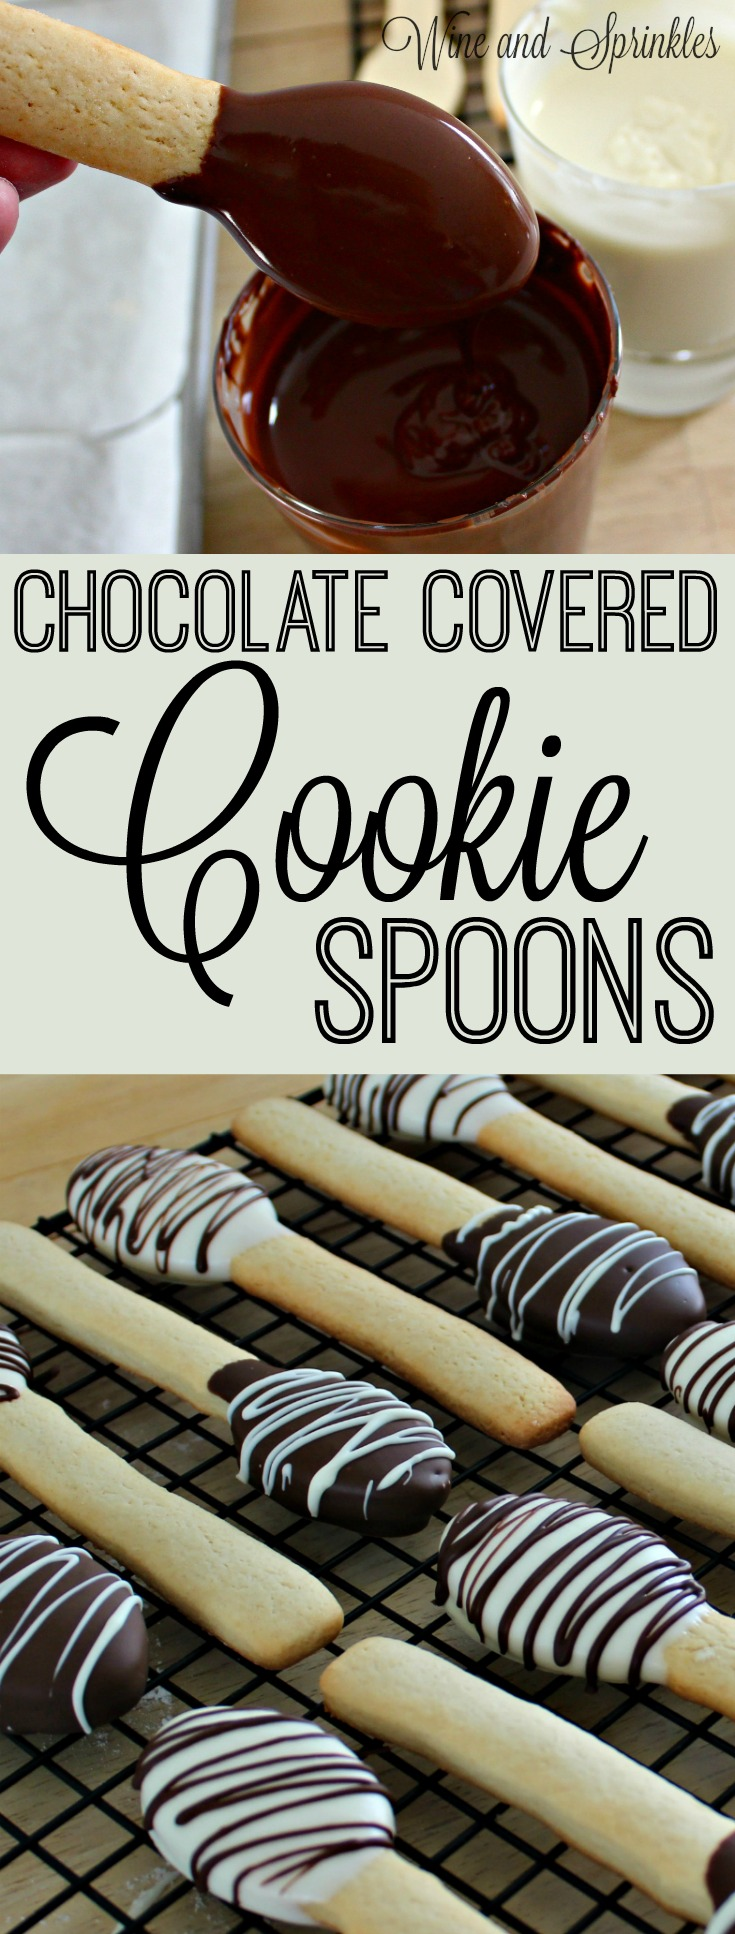 Chocolate Covered Cooker Spoons #cookie #favors